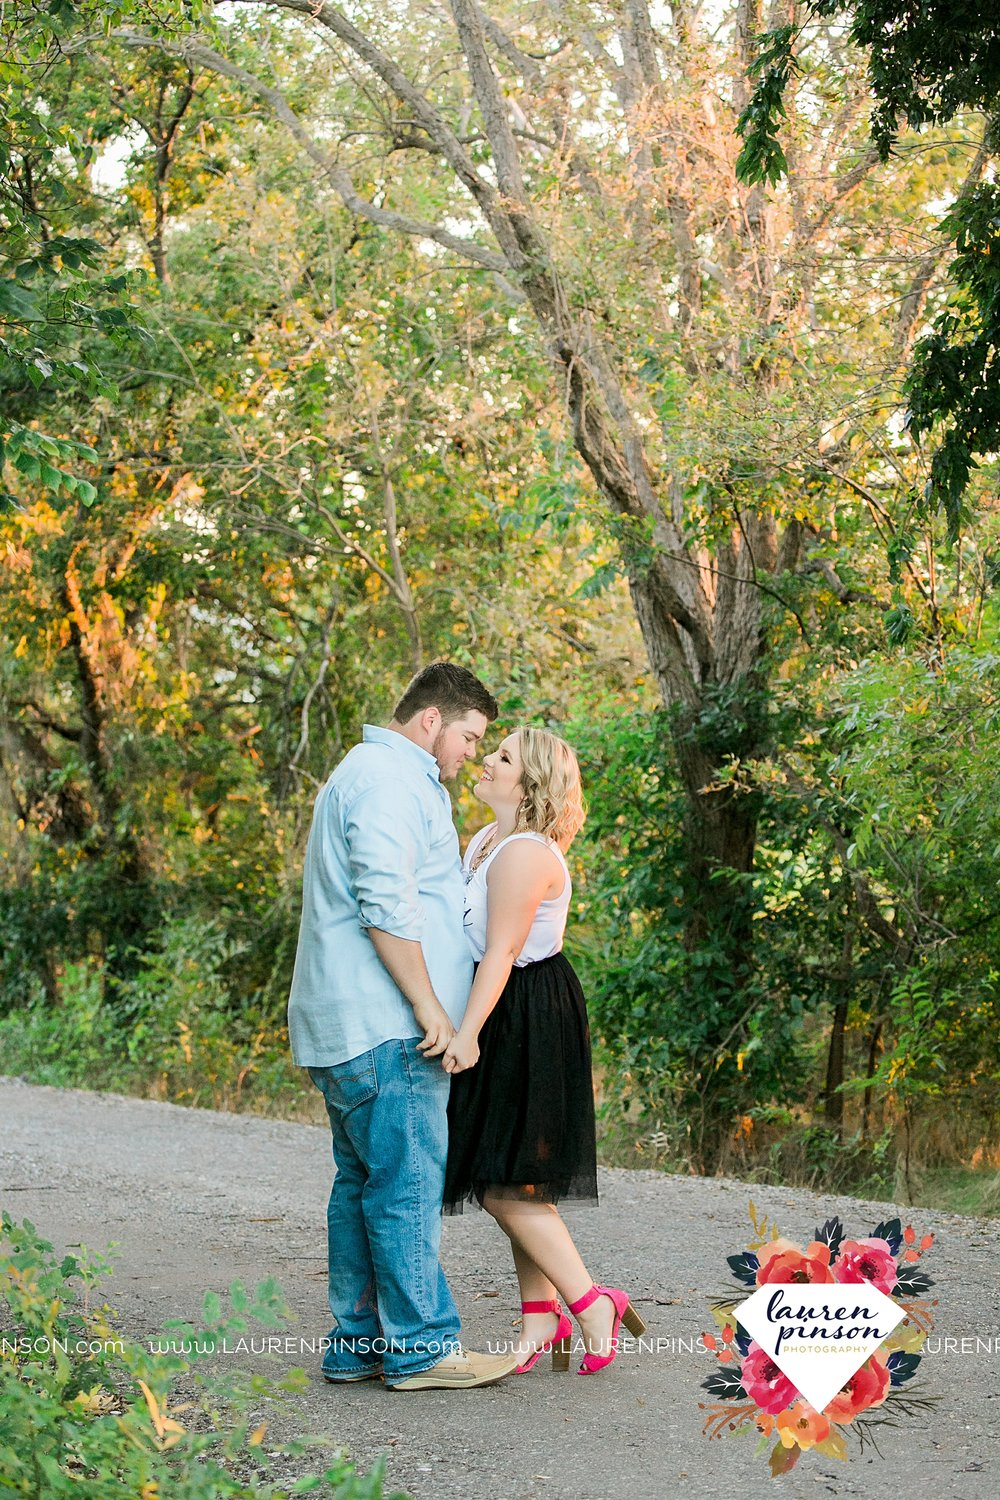 wichita-falls-engagement-and-wedding-photographer-lauren-pinson-photography_3650.jpg